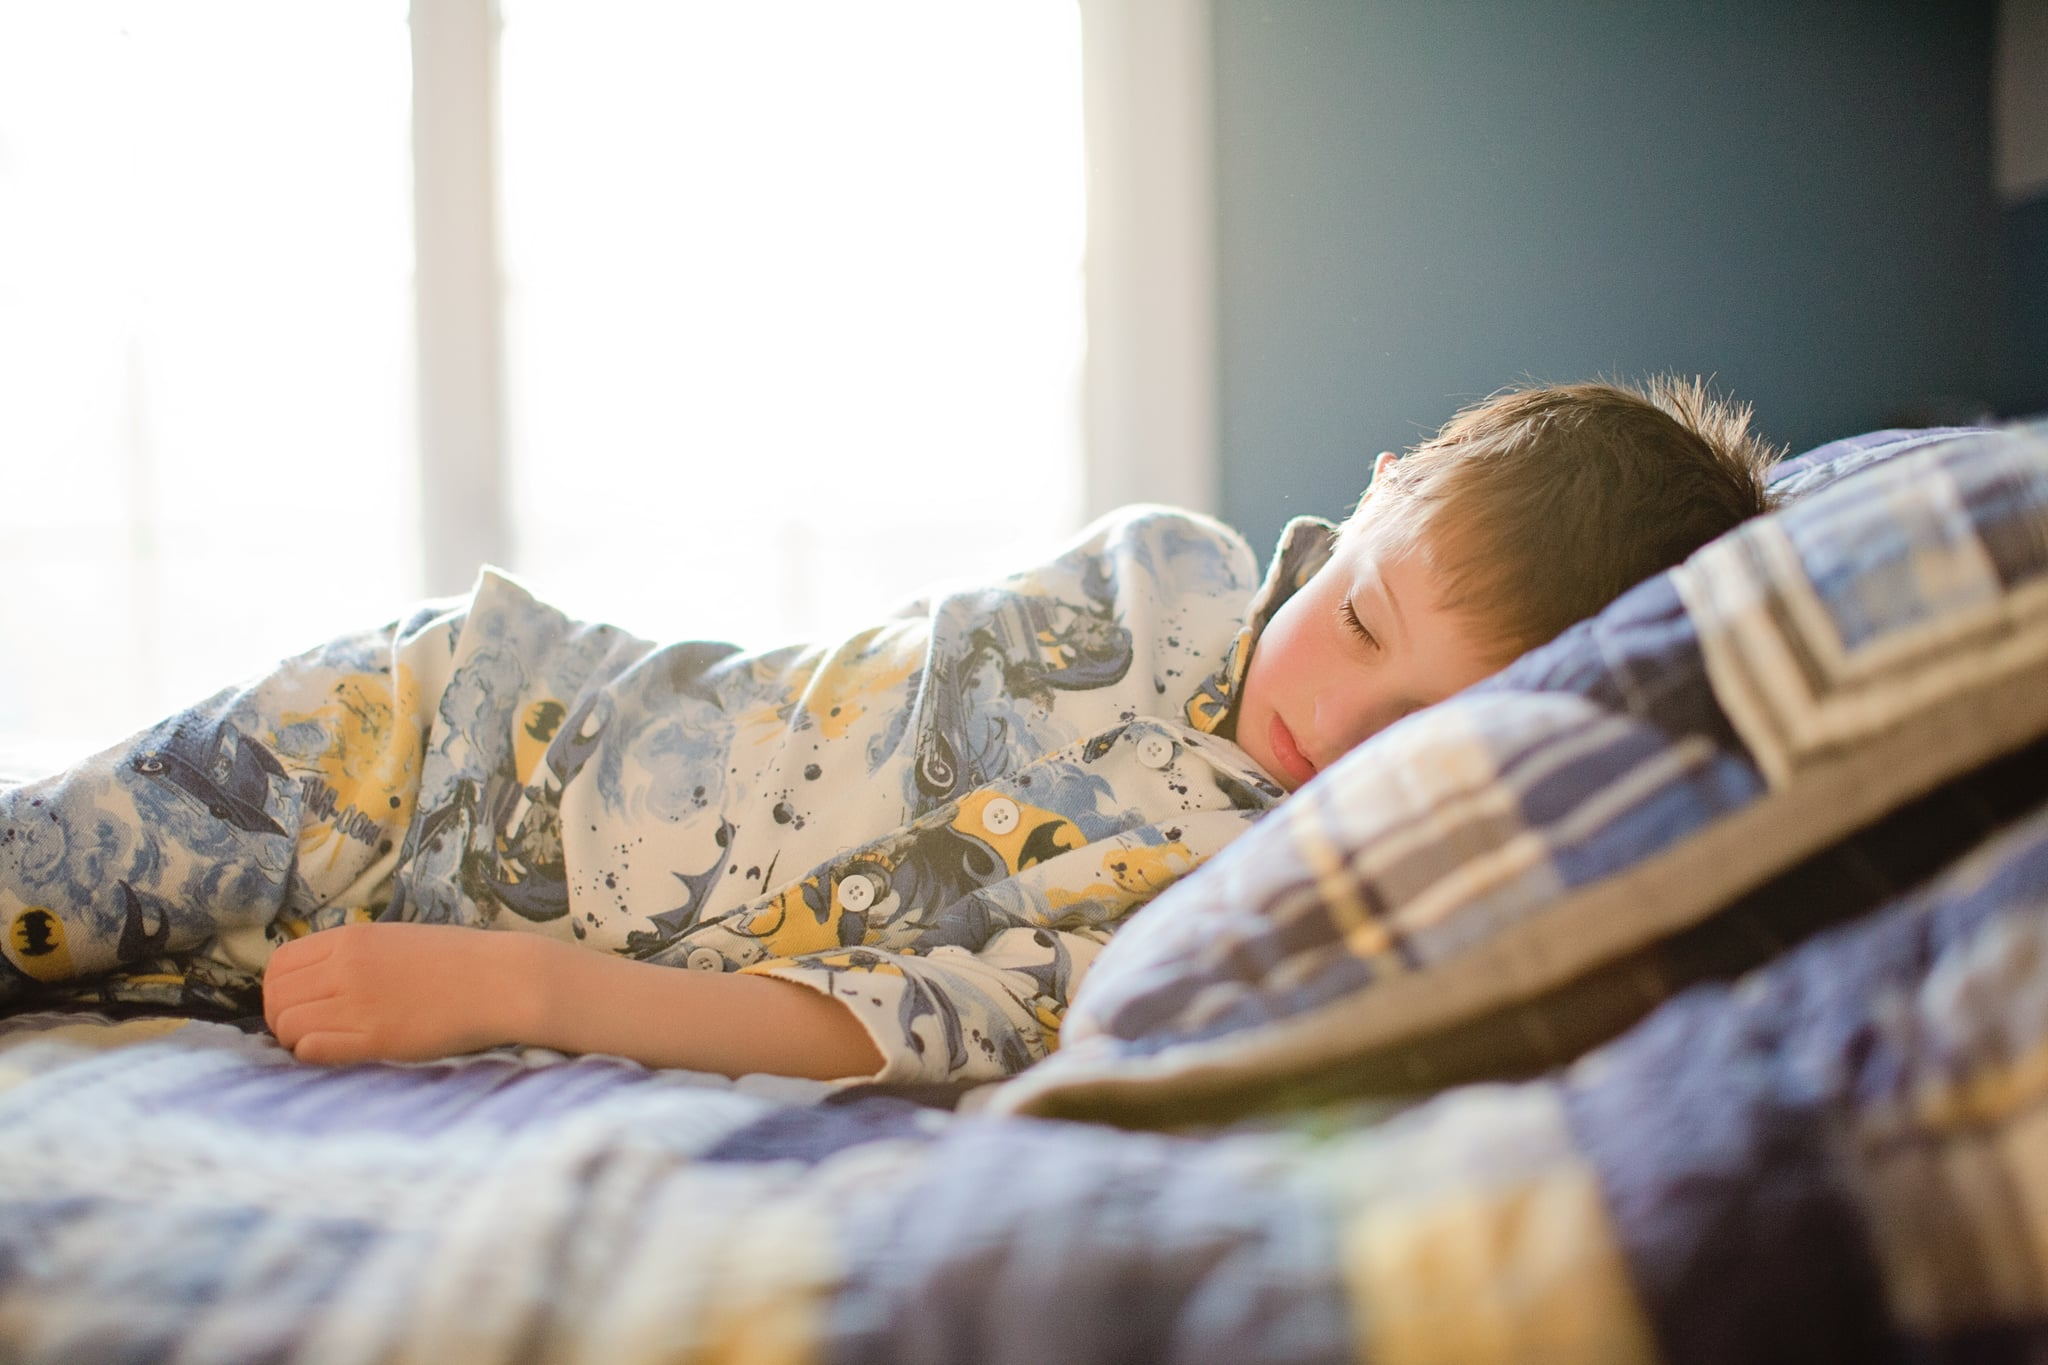 Bedtime With My Kids Is Less of a Battle When I Use This 1 Simple Go-To Sleep Hack